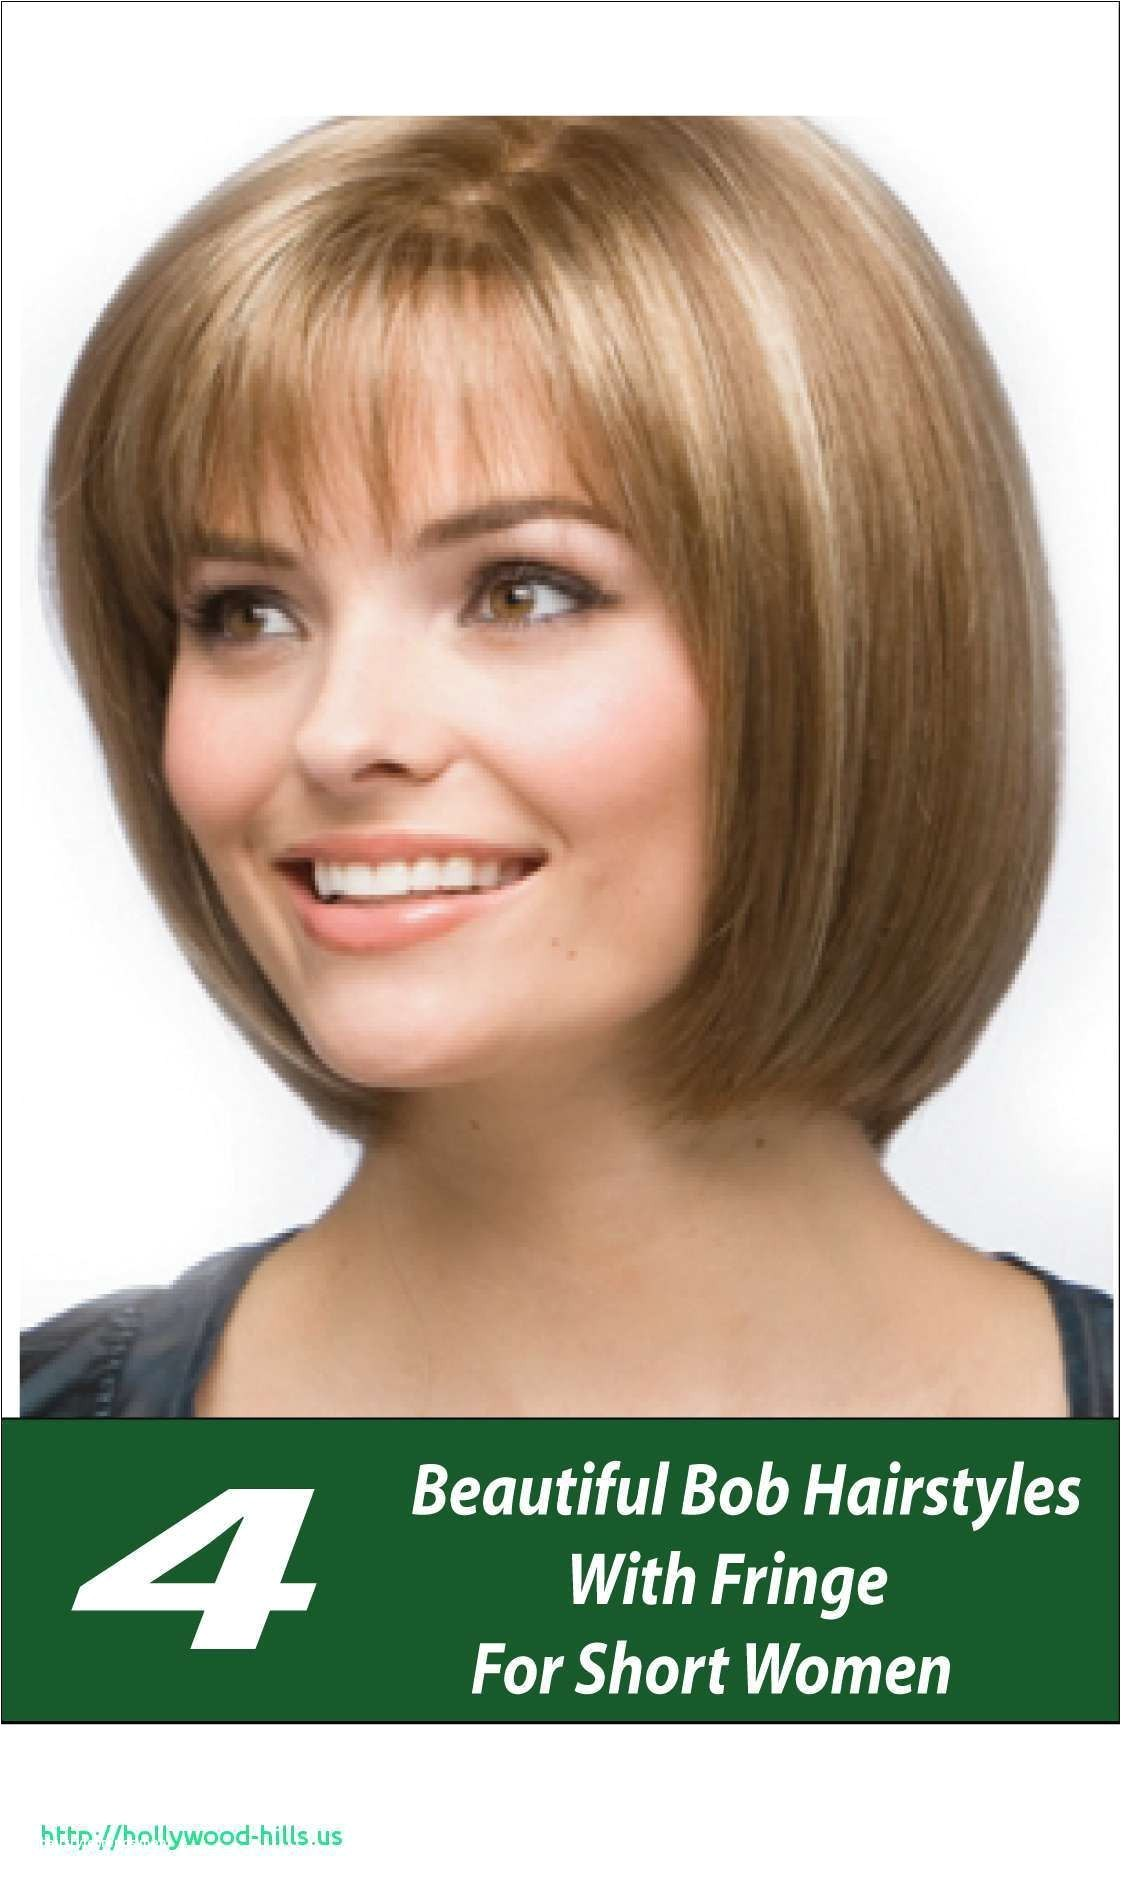 Short Bob Hairstyles with Bangs for Black Women Awesome Hairstyles with Bangs Beautiful Hairstyle for Medium Length Hair 0d